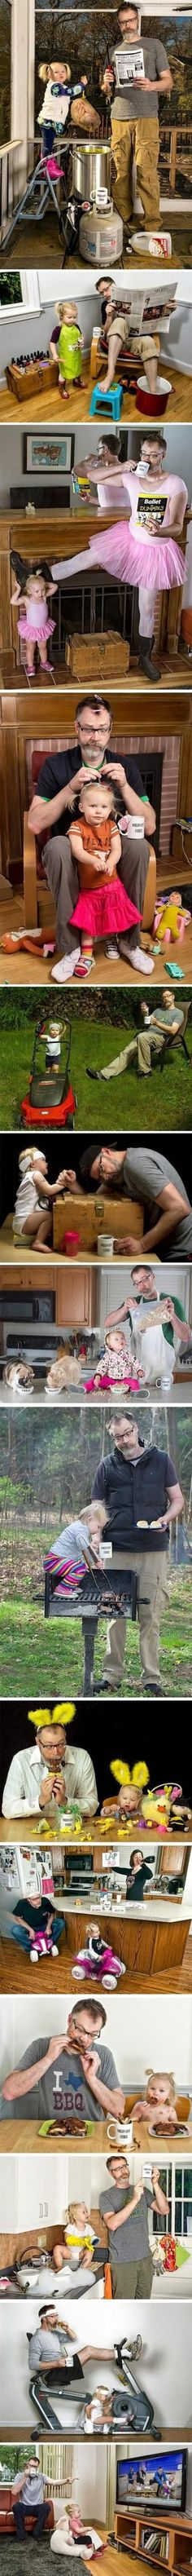 Best Dad Ever - Win Picture | Webfail - Fail Pictures and Fail Videos